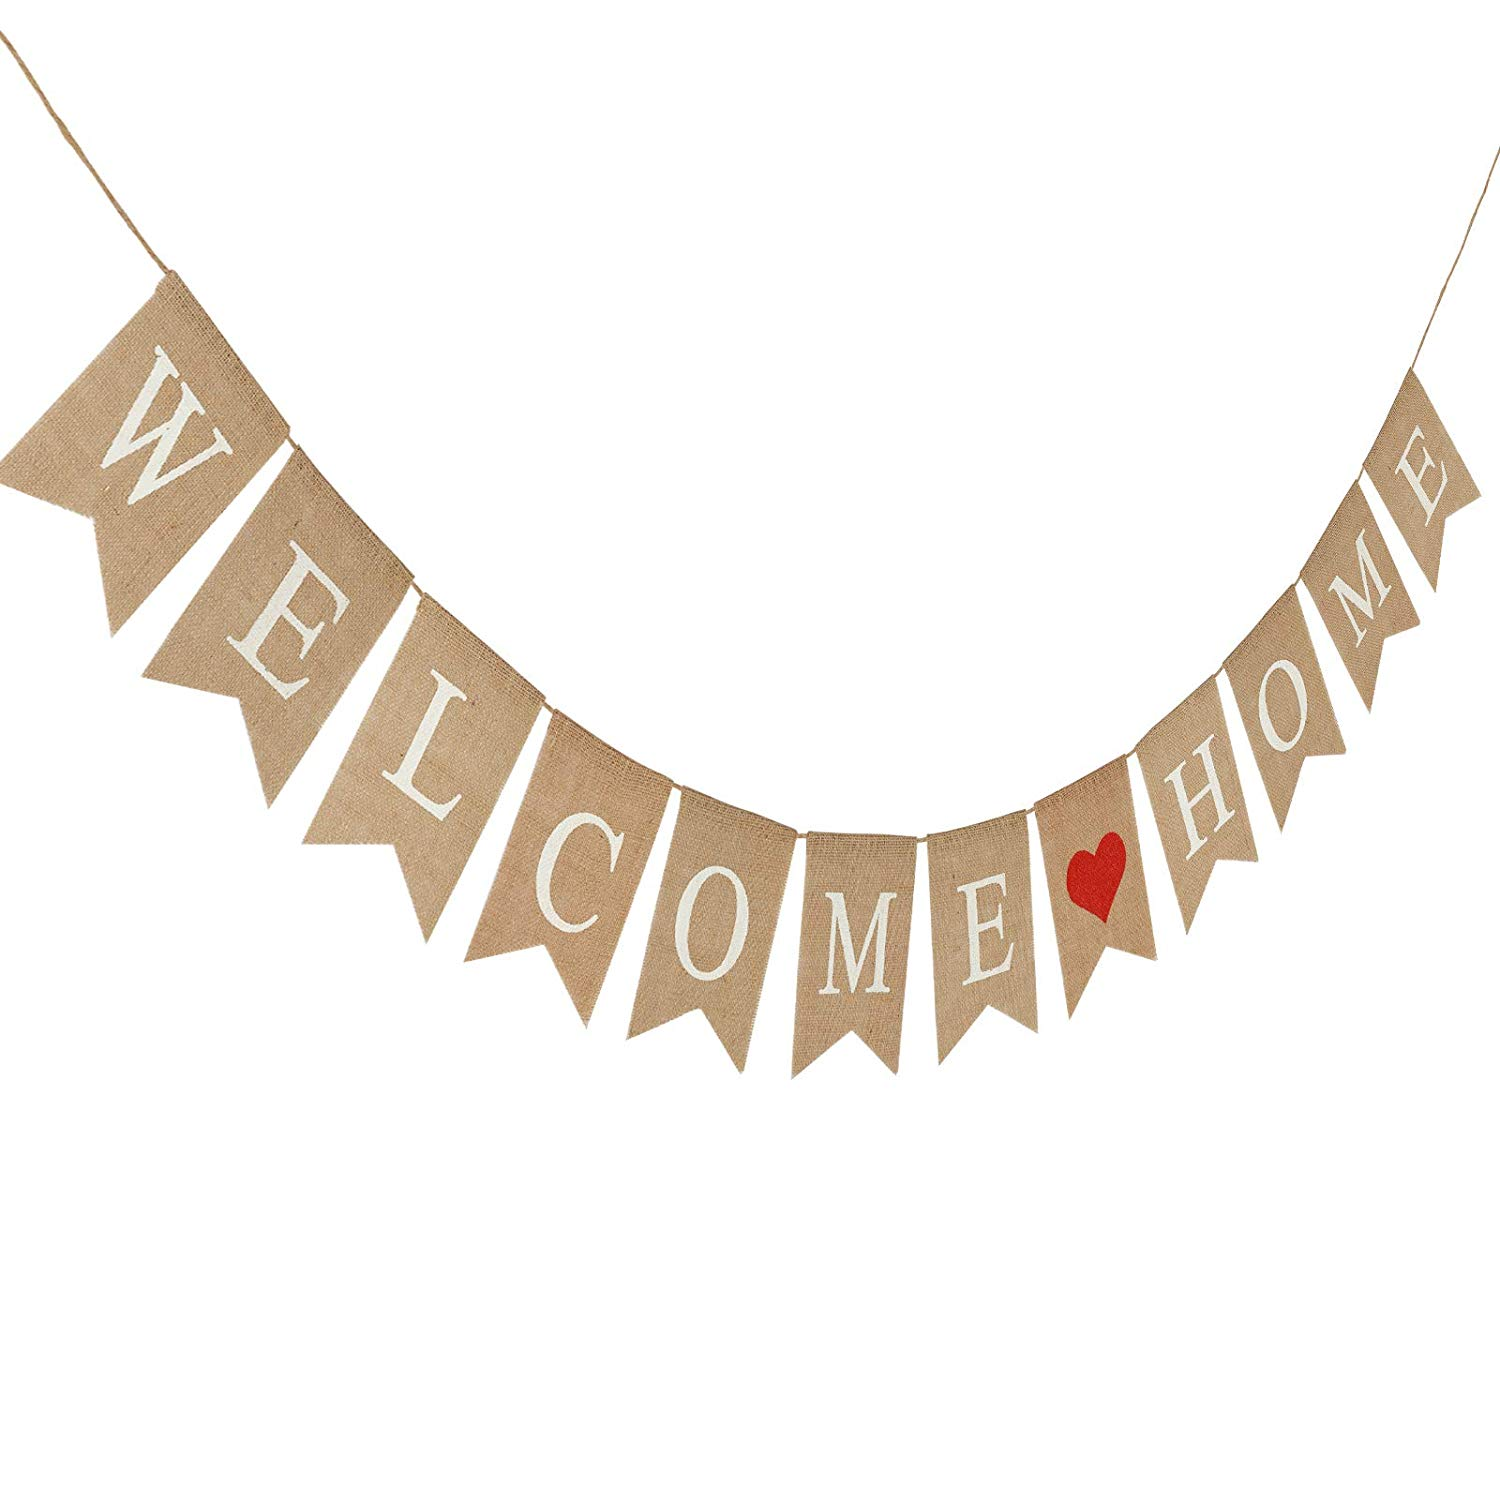 Vintage Rustic Burlap Welcome Banner Home Fireplace Decoration